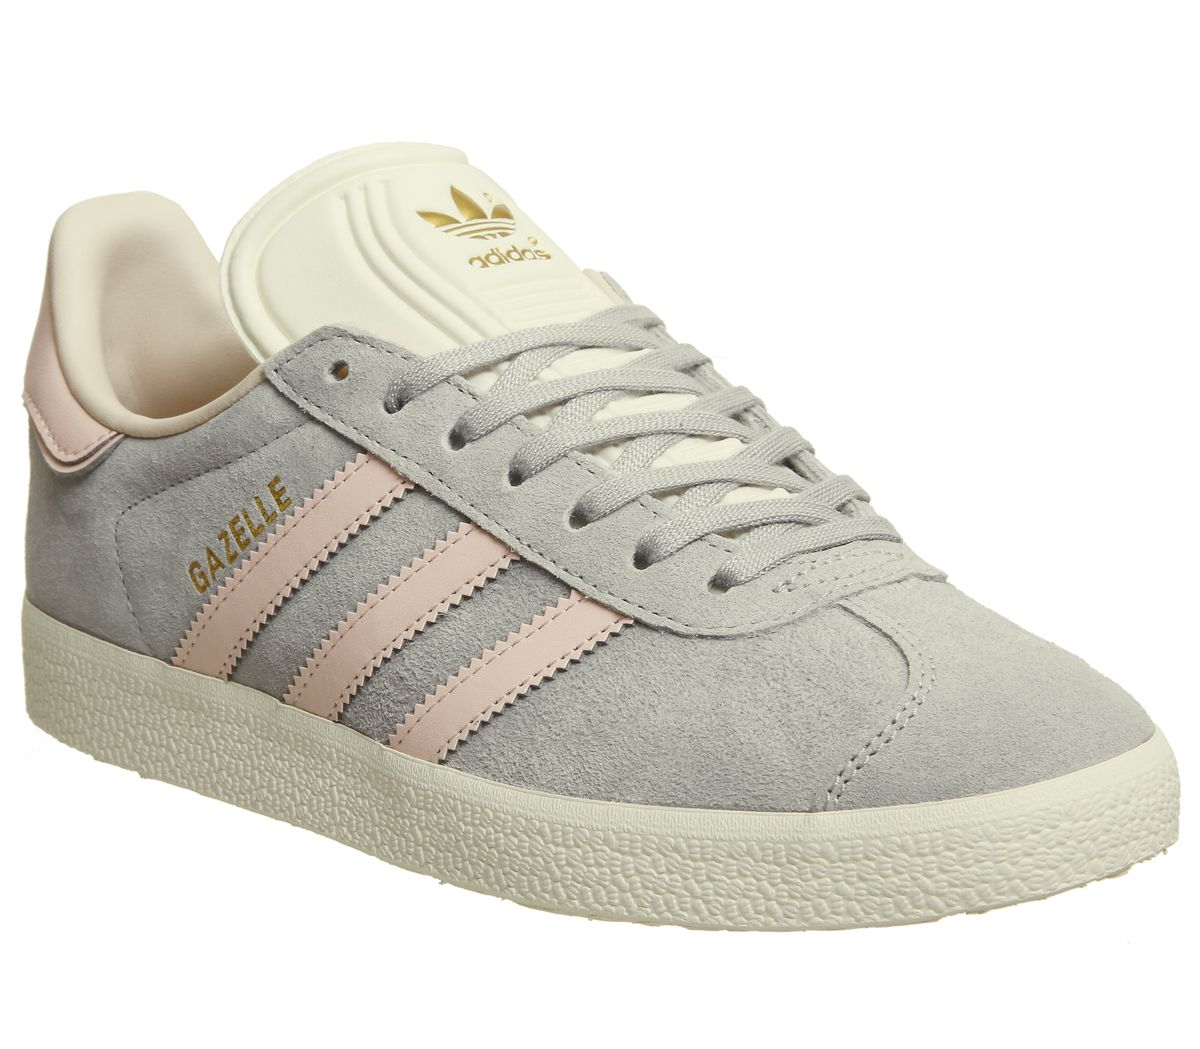 designer fashion f4ed1 e63c8 adidas Gazelle Trainers Grey Two Icey Pink Cream White Exclusive ...